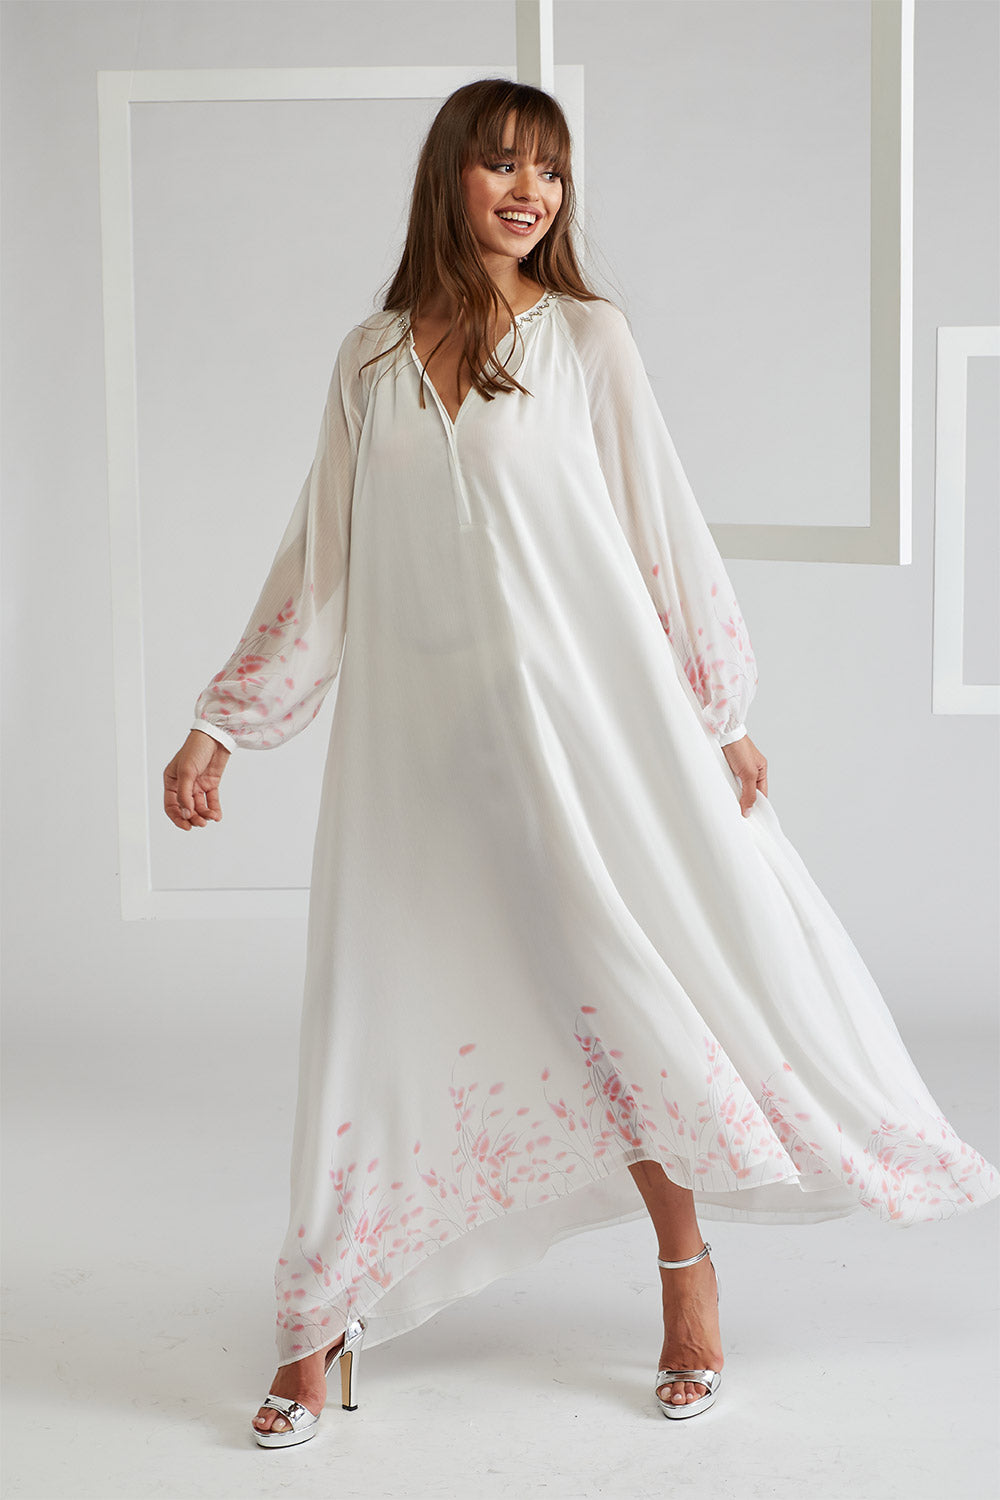 Trimmed Silk Chiffon Dress, layered by viscose